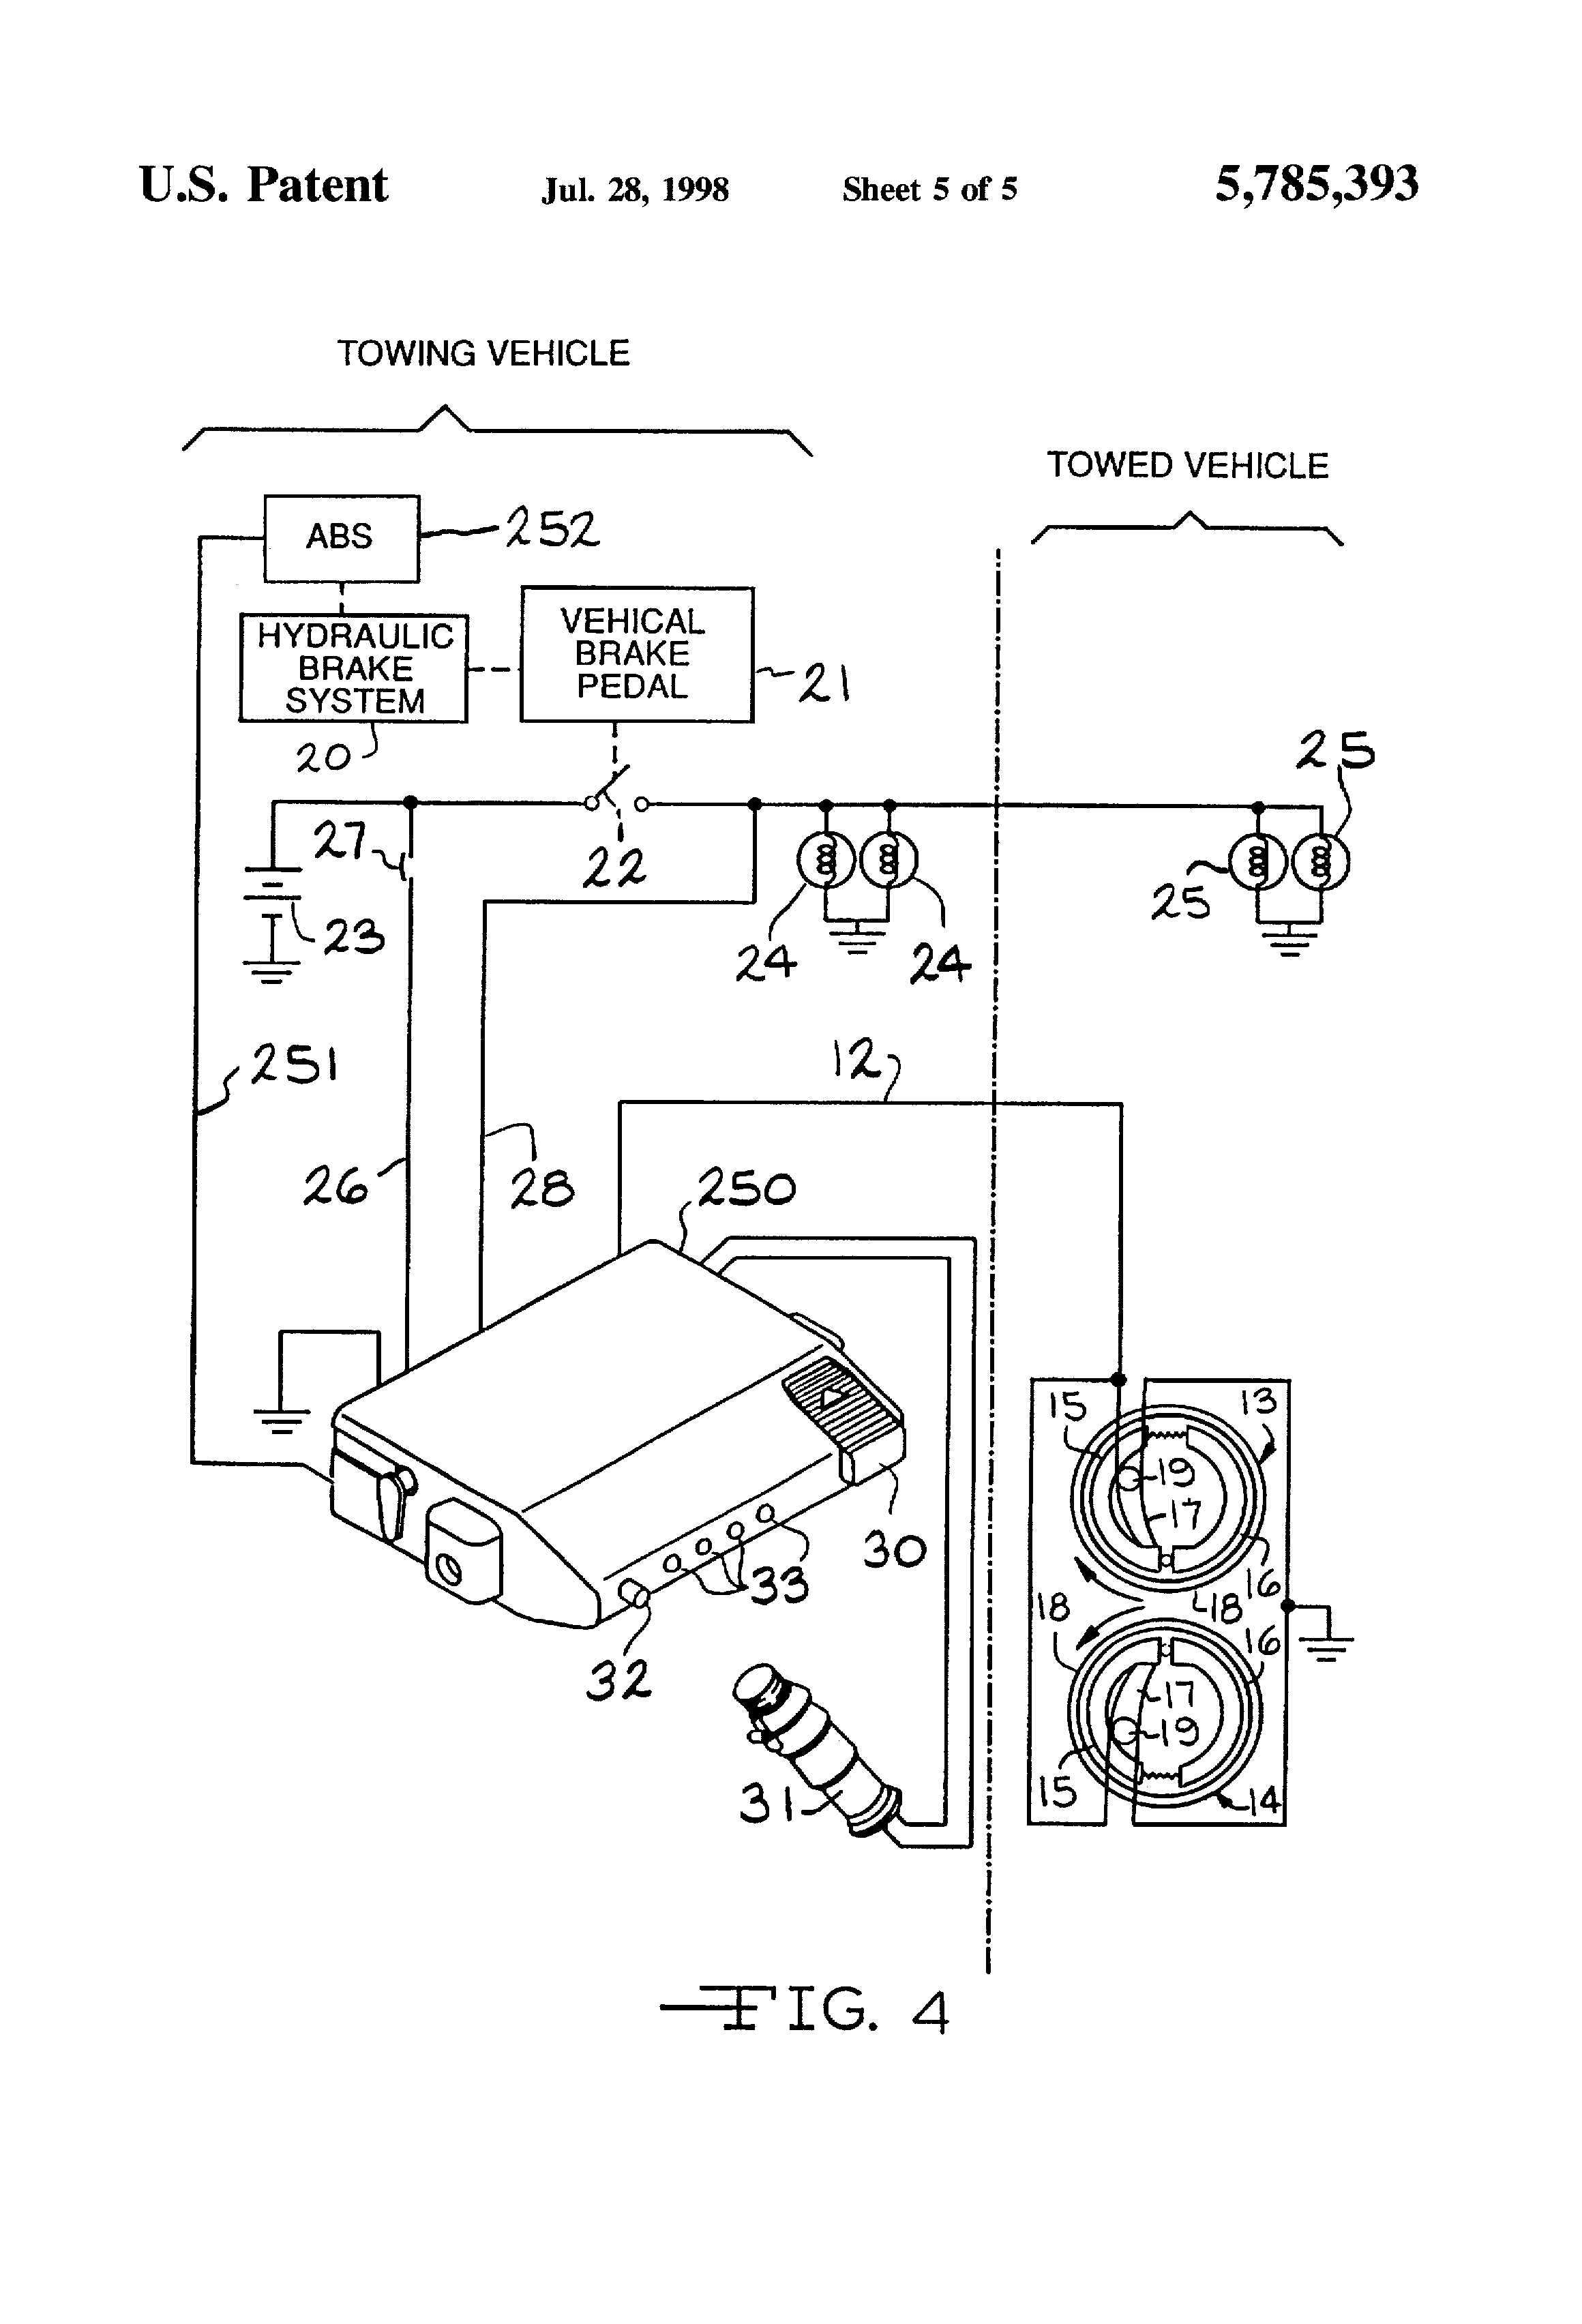 Ford Trailer Brake Control Wiring Diagram | Wiring Diagram - Ford Trailer Brake Controller Wiring Diagram